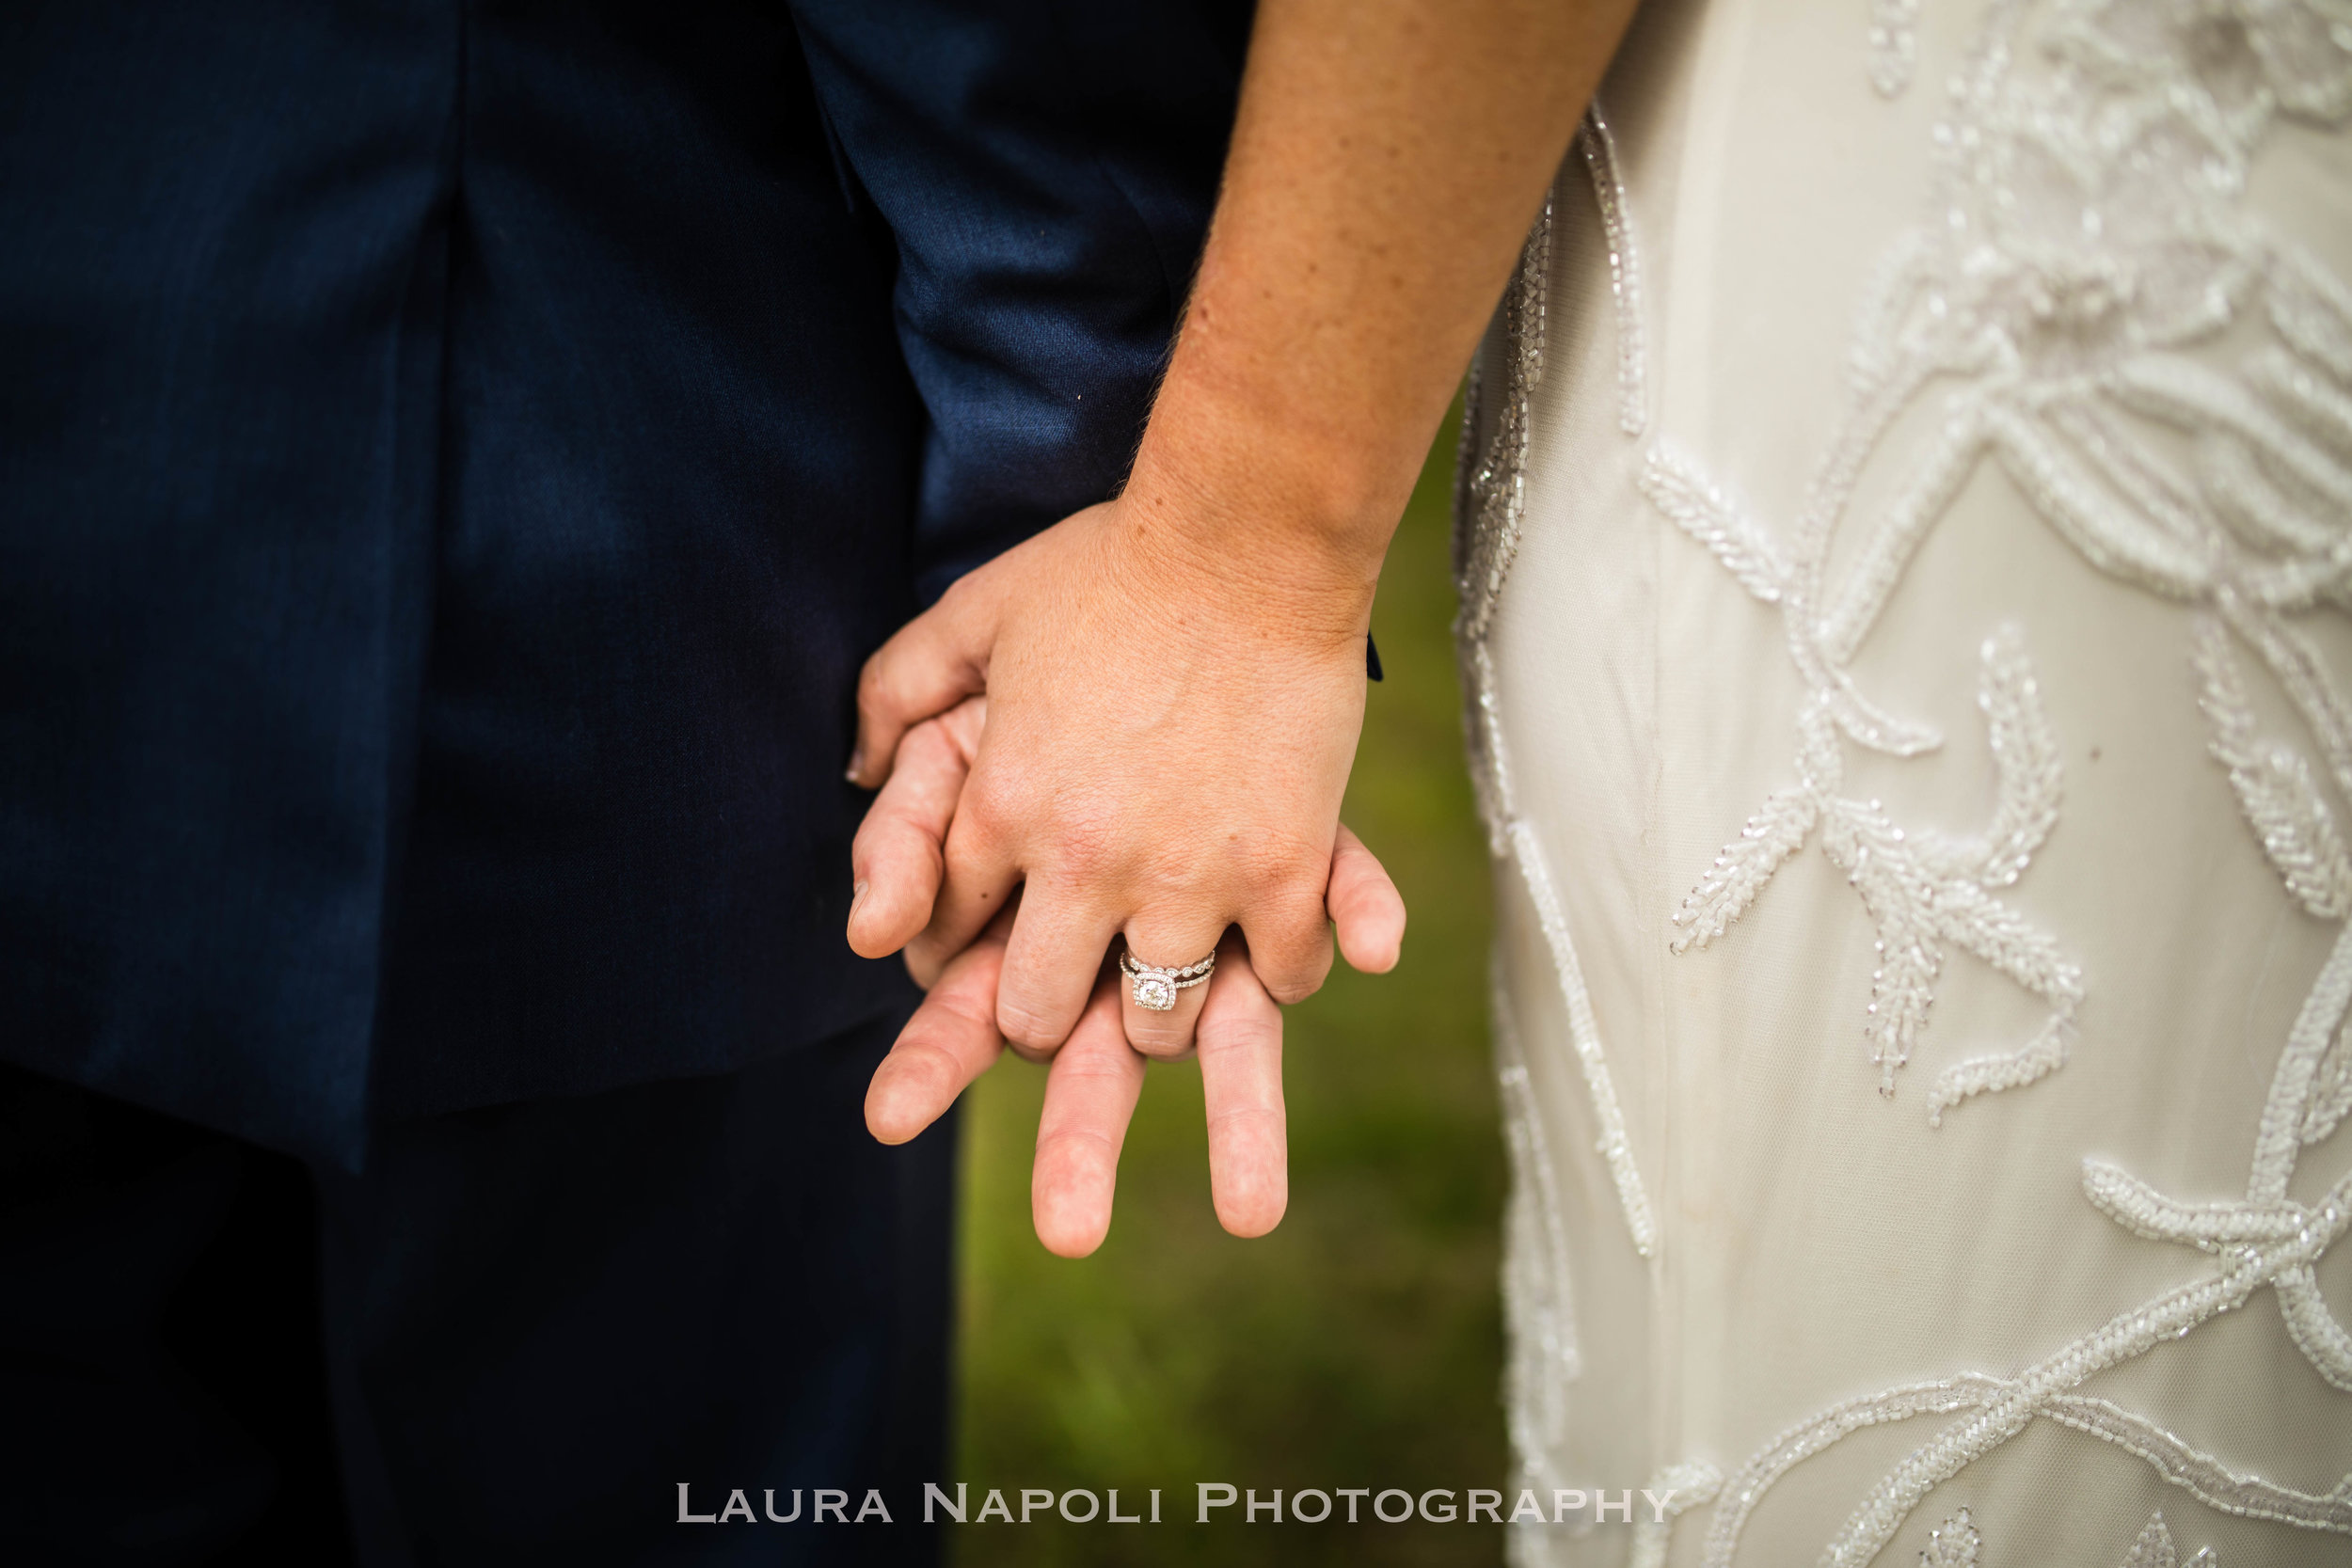 abbieholmesestateweddingcapemaynjweddingphotographer-47.jpg